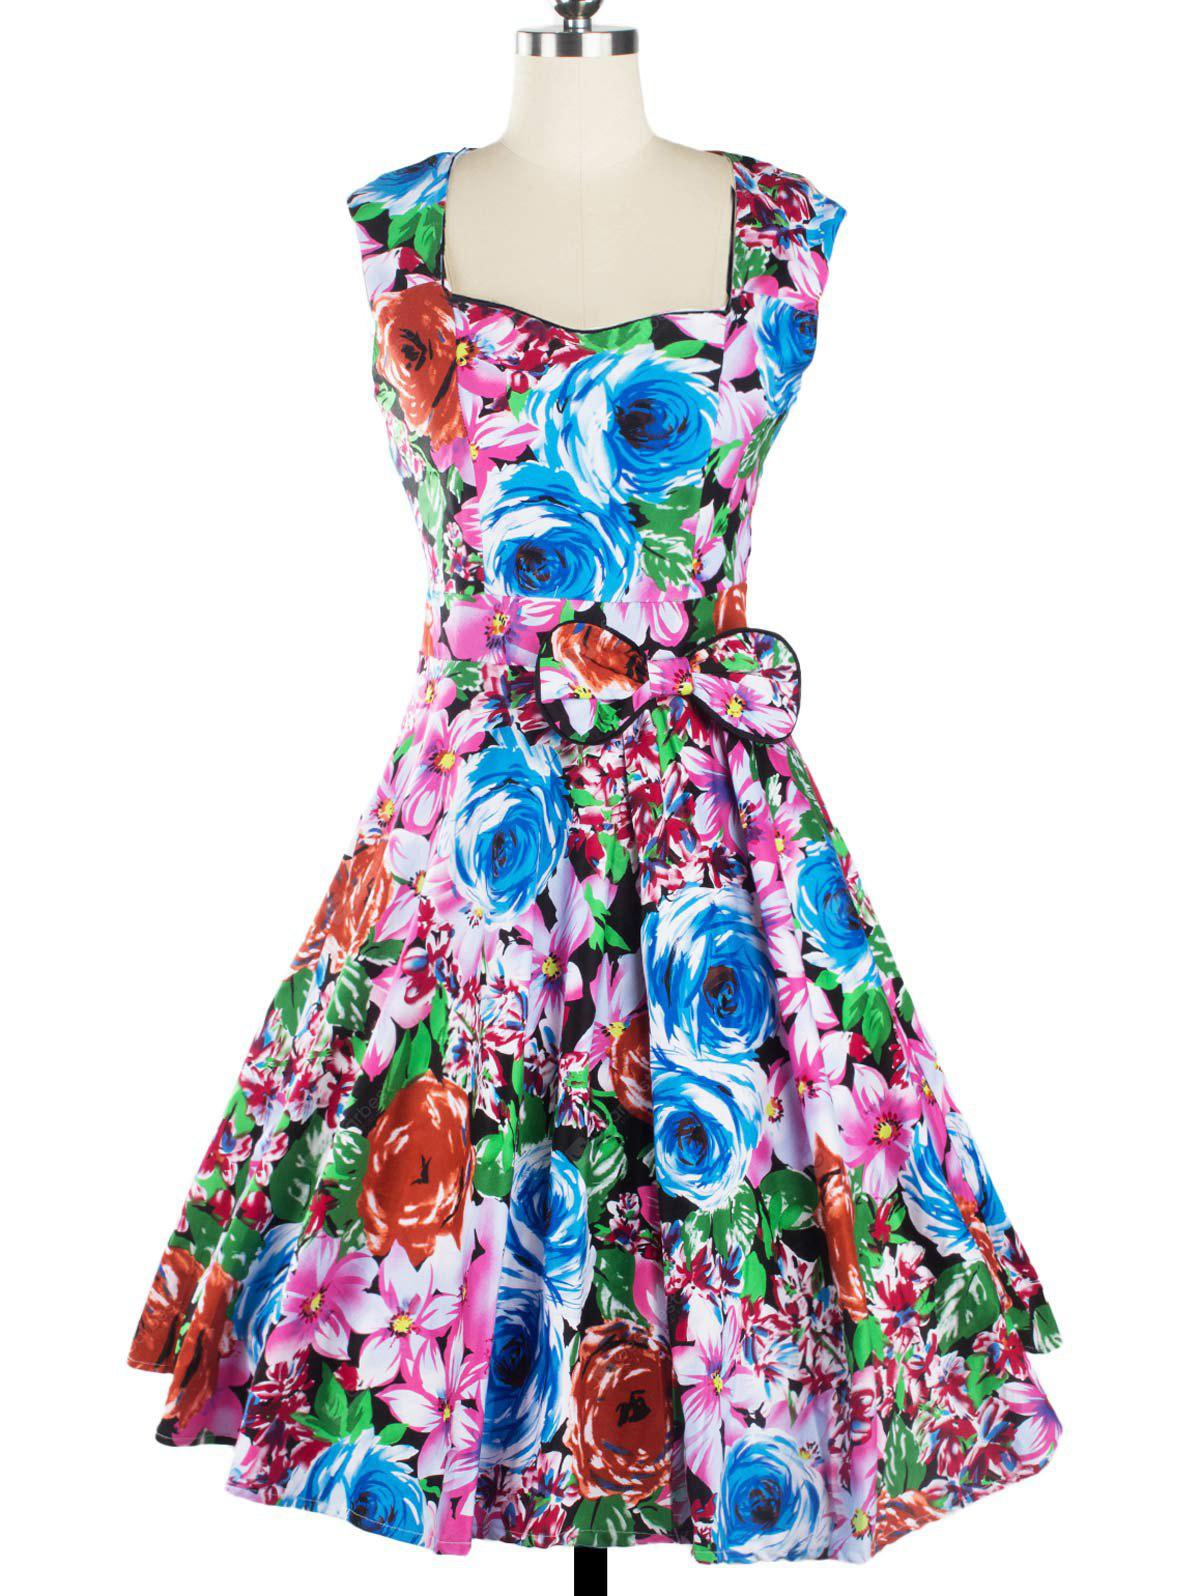 Floral Sweetheart Neck Knee Length Flare Dress